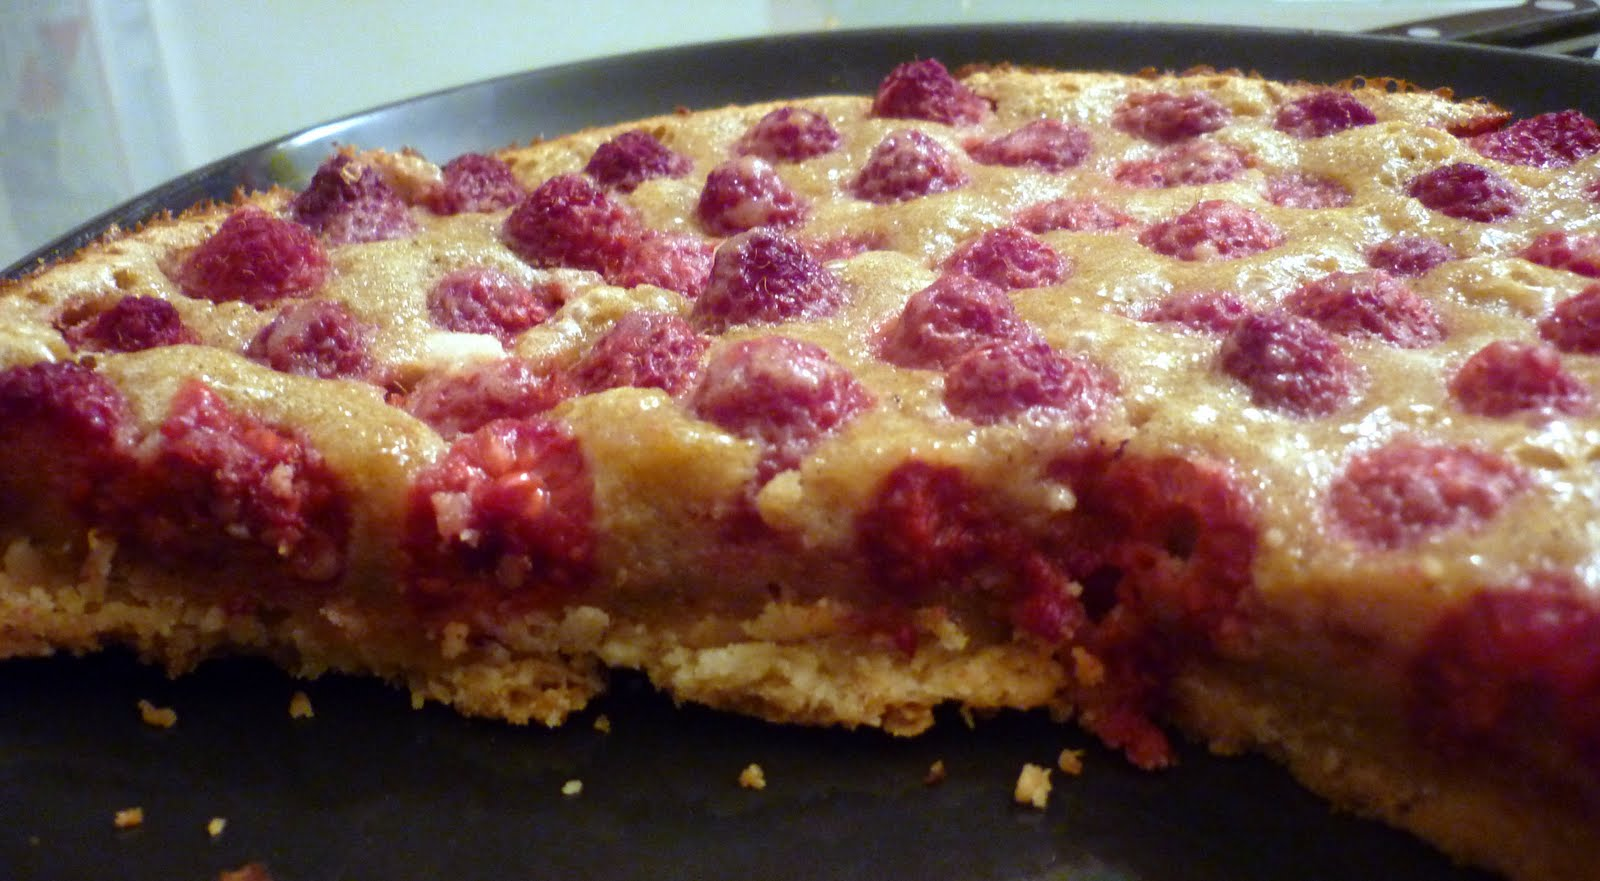 Good Looking Home Cooking: Brown Butter Raspberry Tart